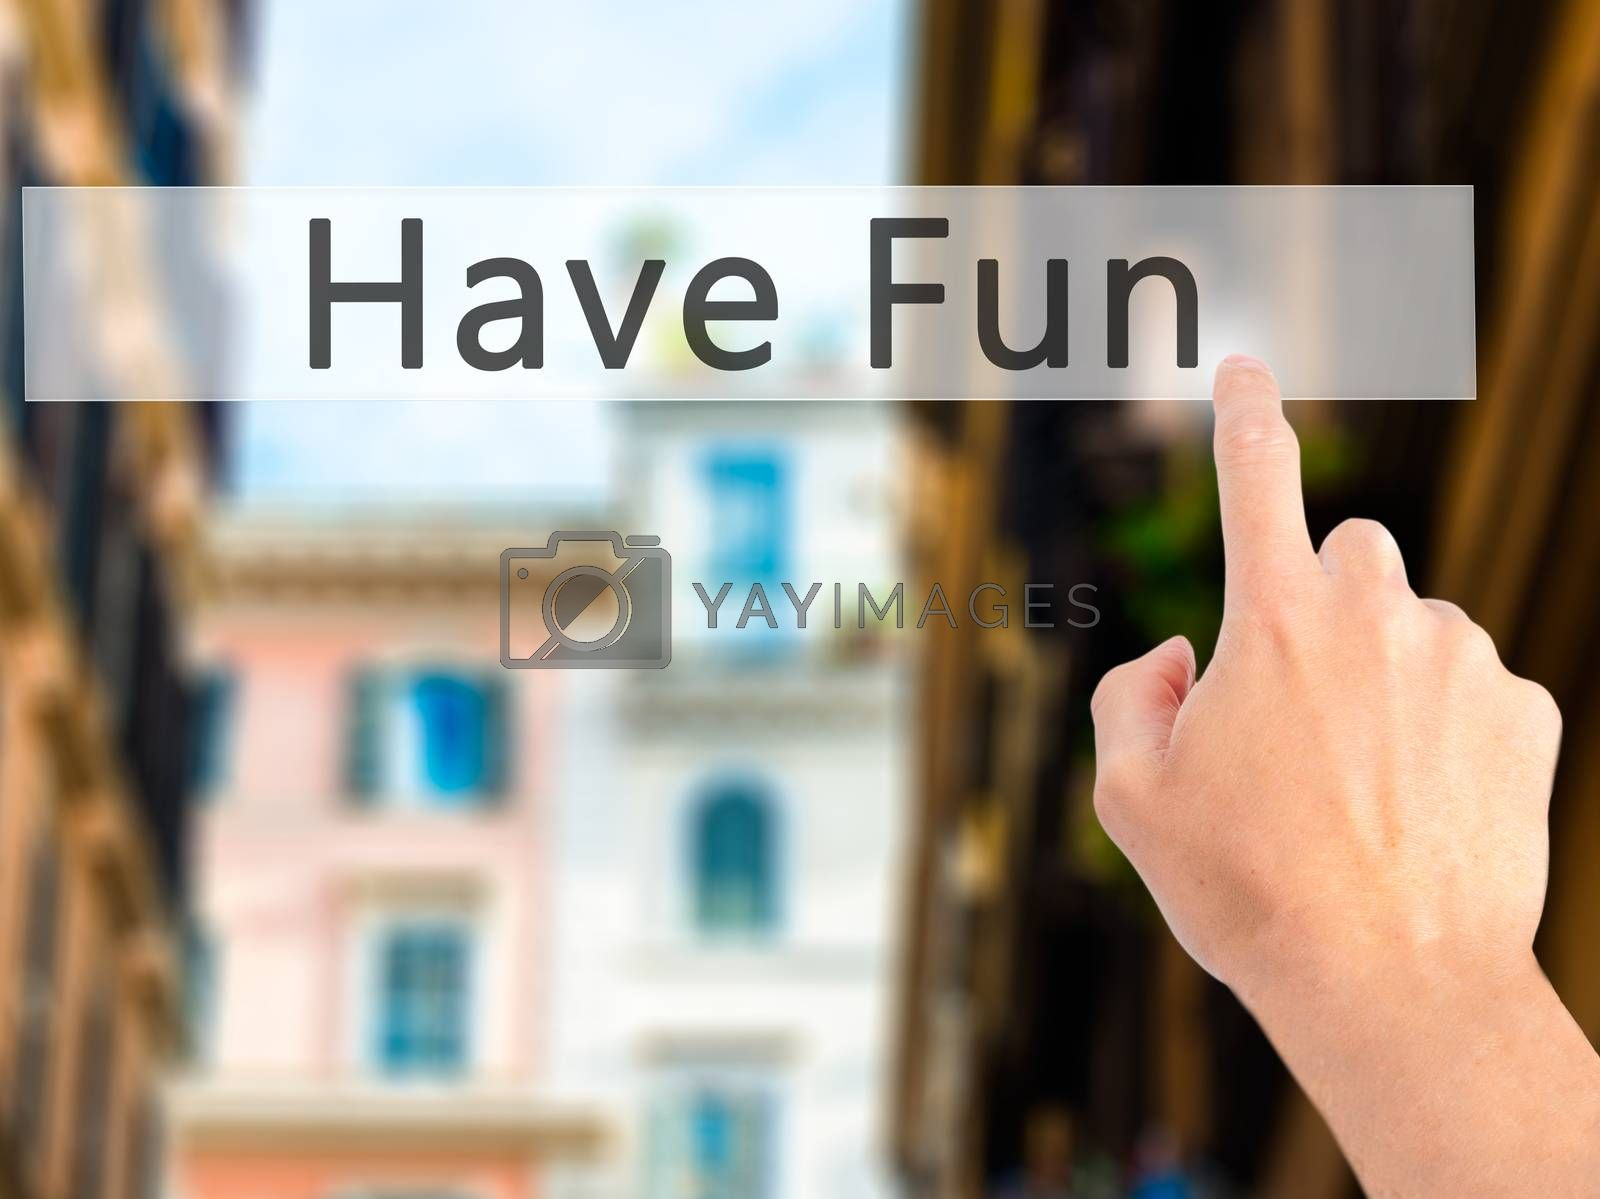 Have Fun - Hand pressing a button on blurred background concept  by netsay.net